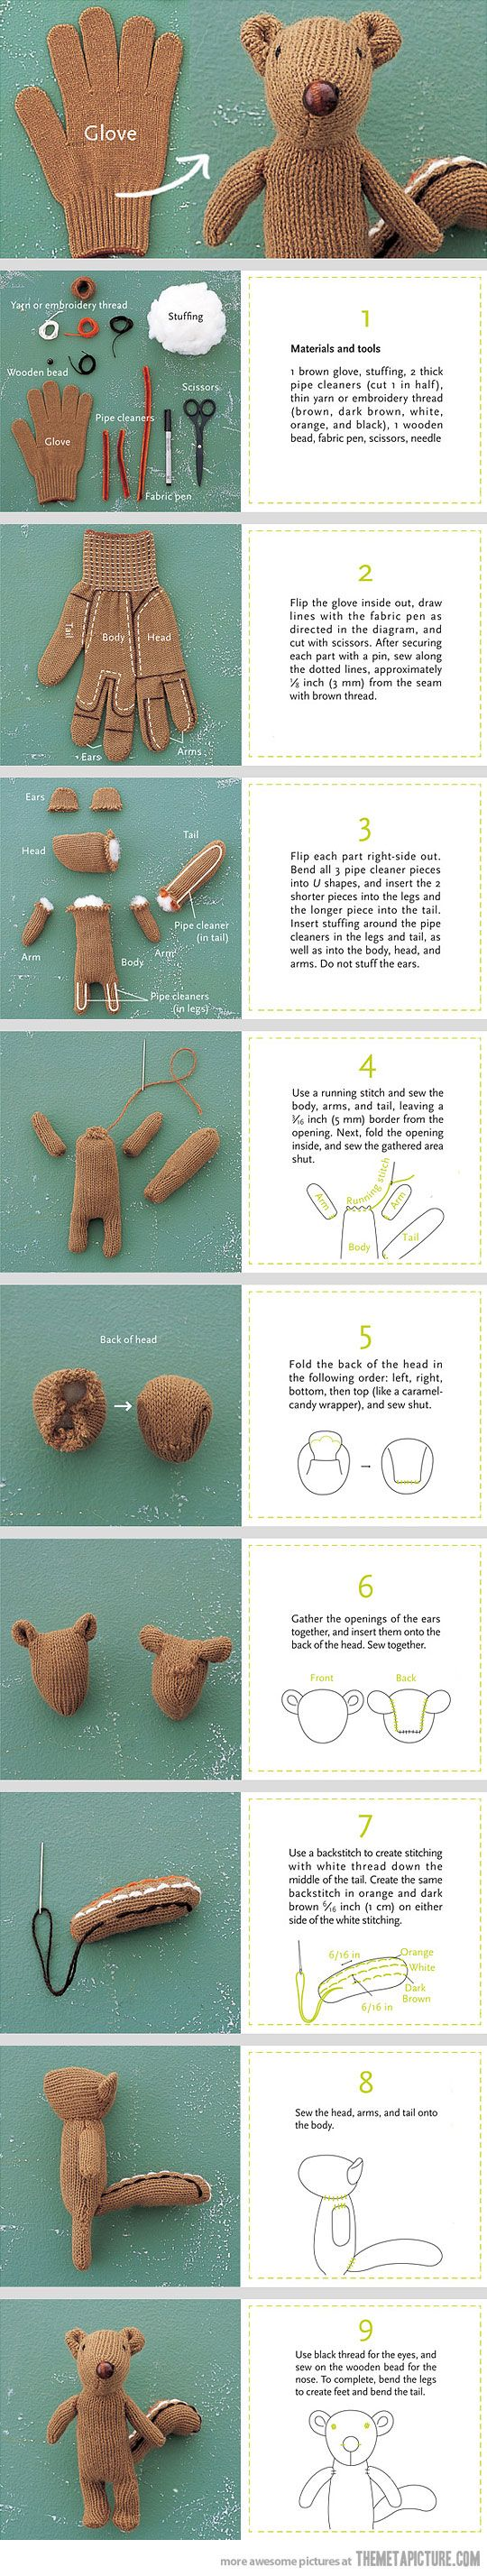 How to Turn a Glove into a Chipmunk: Ideas, Projects, Squirrels, Diy Crafts, Socks Monkey, Teddy Bears, Cute Crafts, Chipmunks, Gloves